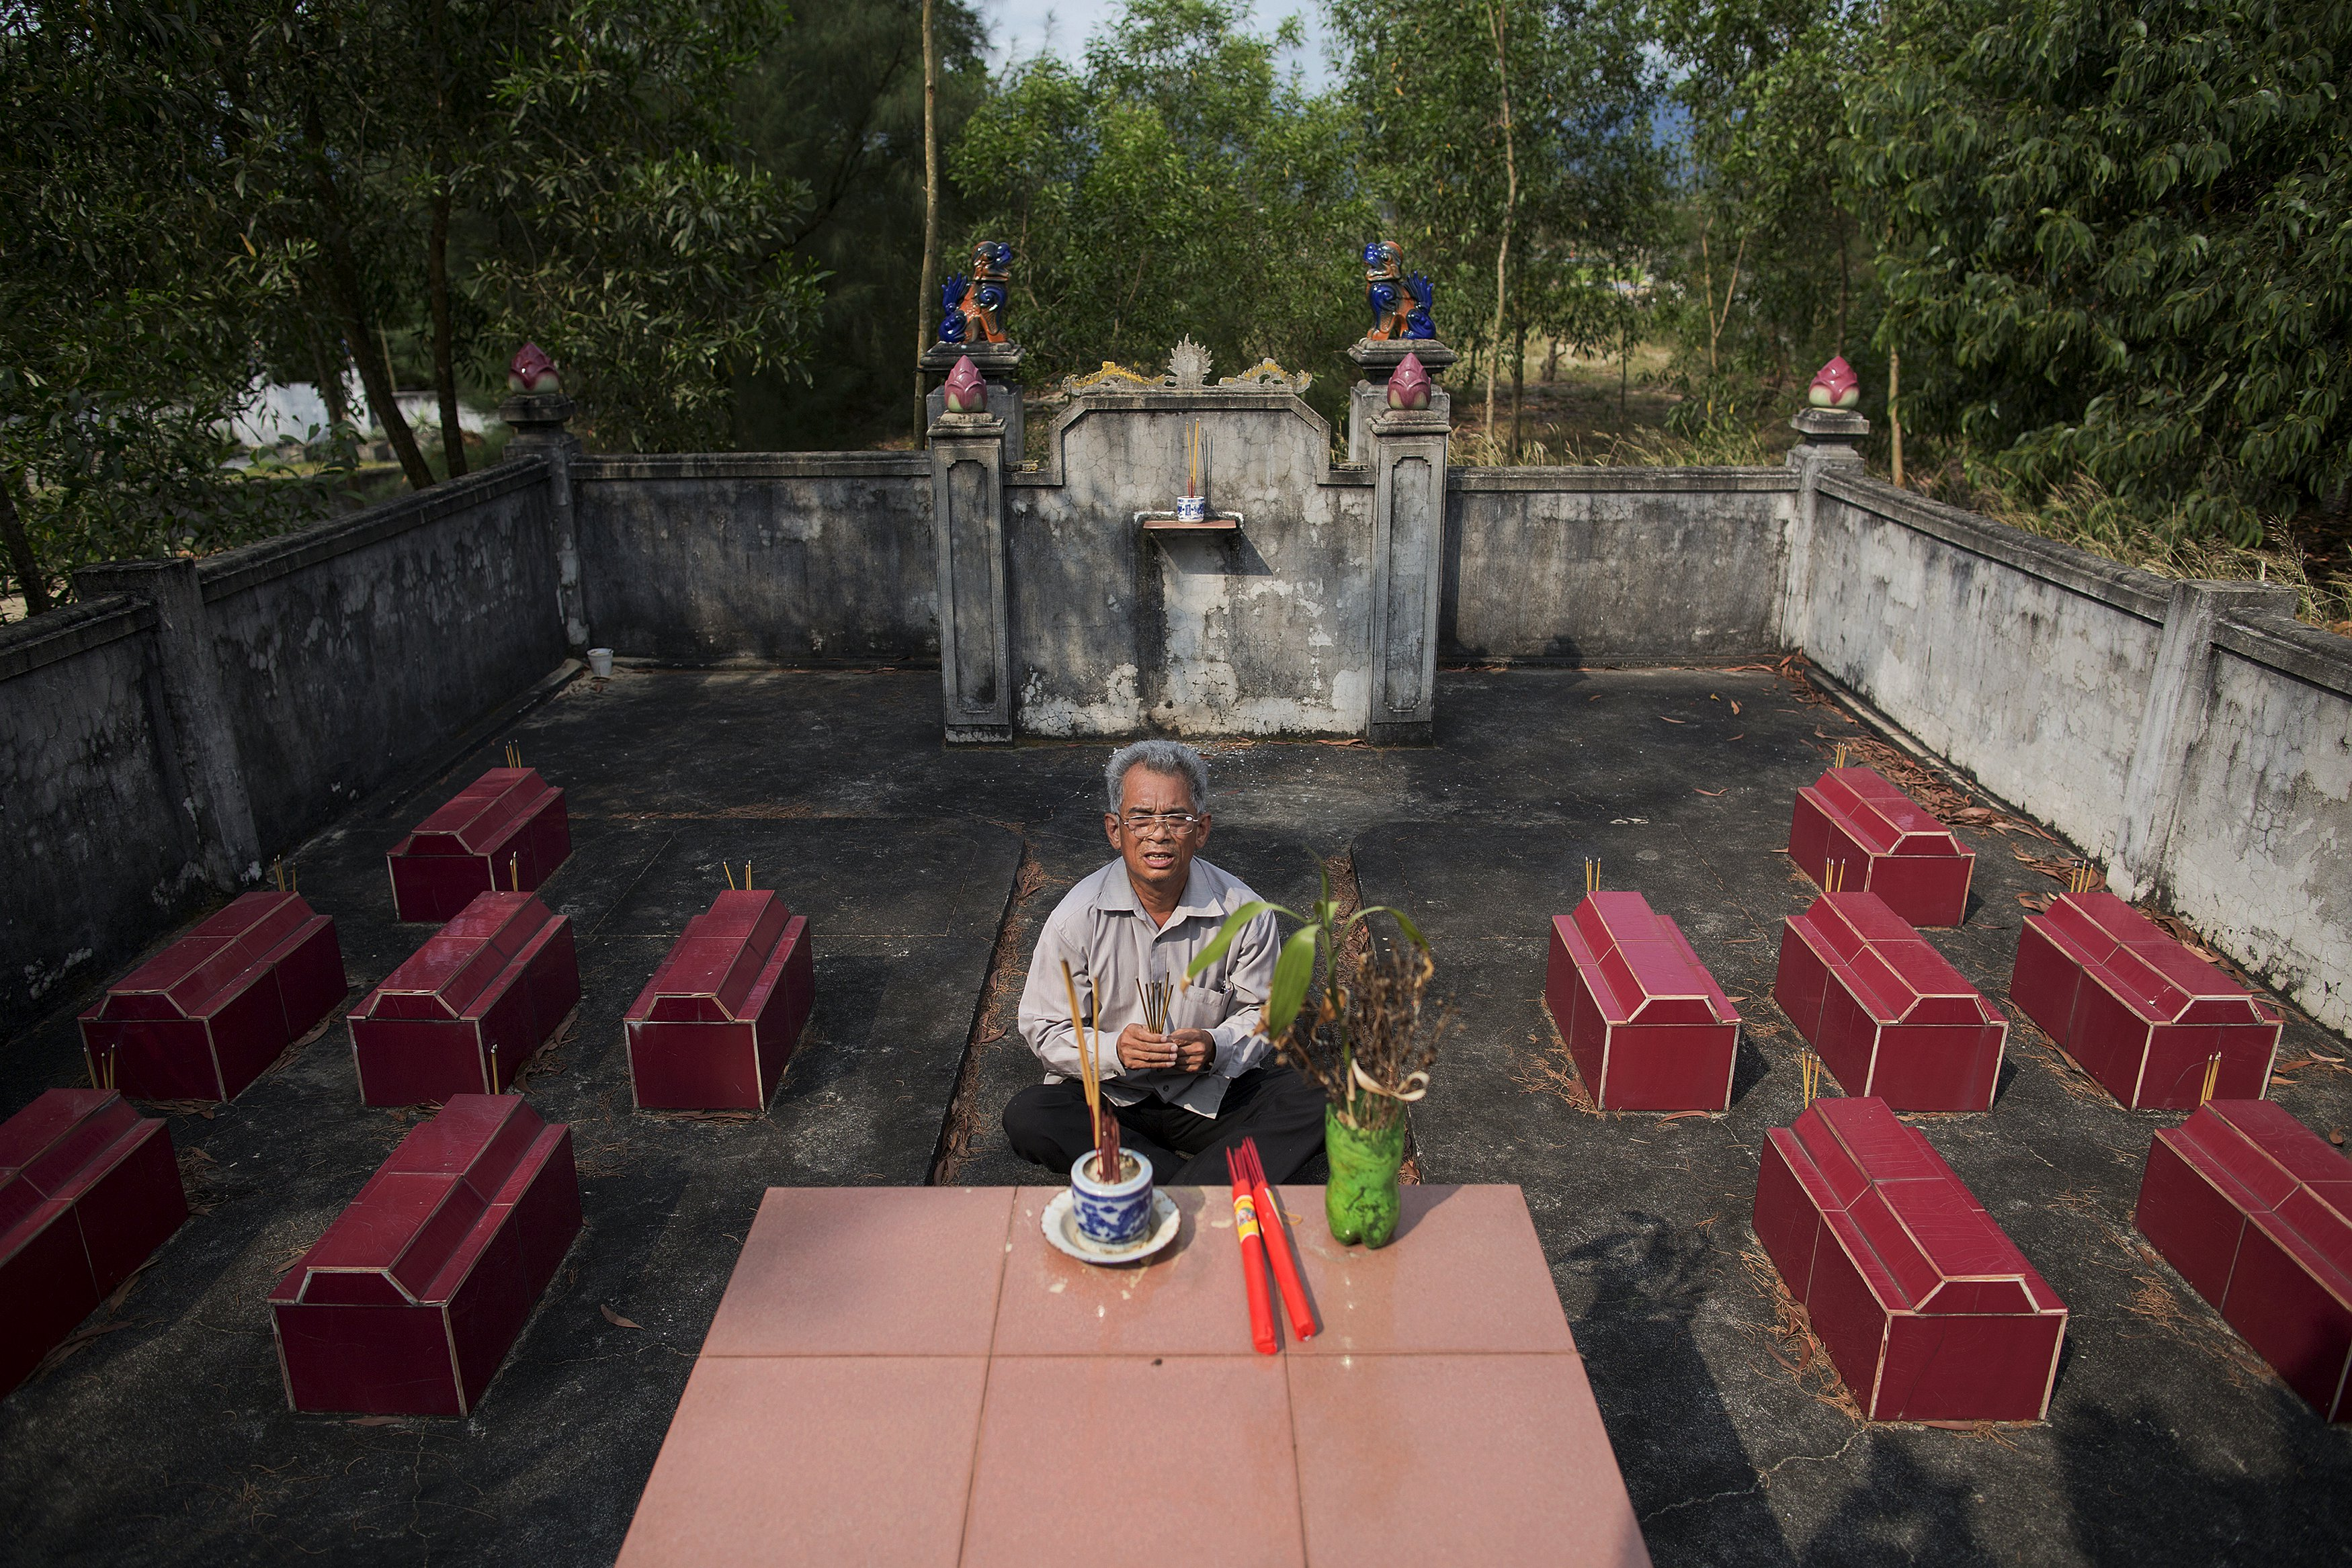 Former soldier Do Duc Diu prays at the cemetery where twelve of his children are buried, after showing the graves to reporters, near his house in Quang Binh Province in central Vietnam April 11, 2015. Twelve of his fifteen children died from illnesses that the family and their doctors link to Do Duc Diu's exposure to Agent Orange. Do Duc Diu served as a Vietnamese soldier from the North in the early 70s in areas that were heavily contaminated by Agent Orange. He only found out about the possible dangers of Agent Orange before his last child was born in 1994. He said that if he had known about the possible effects of Agent Orange he would not have had children. Before he found out about the effects of Agent Orange, Do Duc Diu said that he and his wife visited many spiritual leaders and prayed at different shrines as they attributed their children's sickness to their ill-fated destiny.